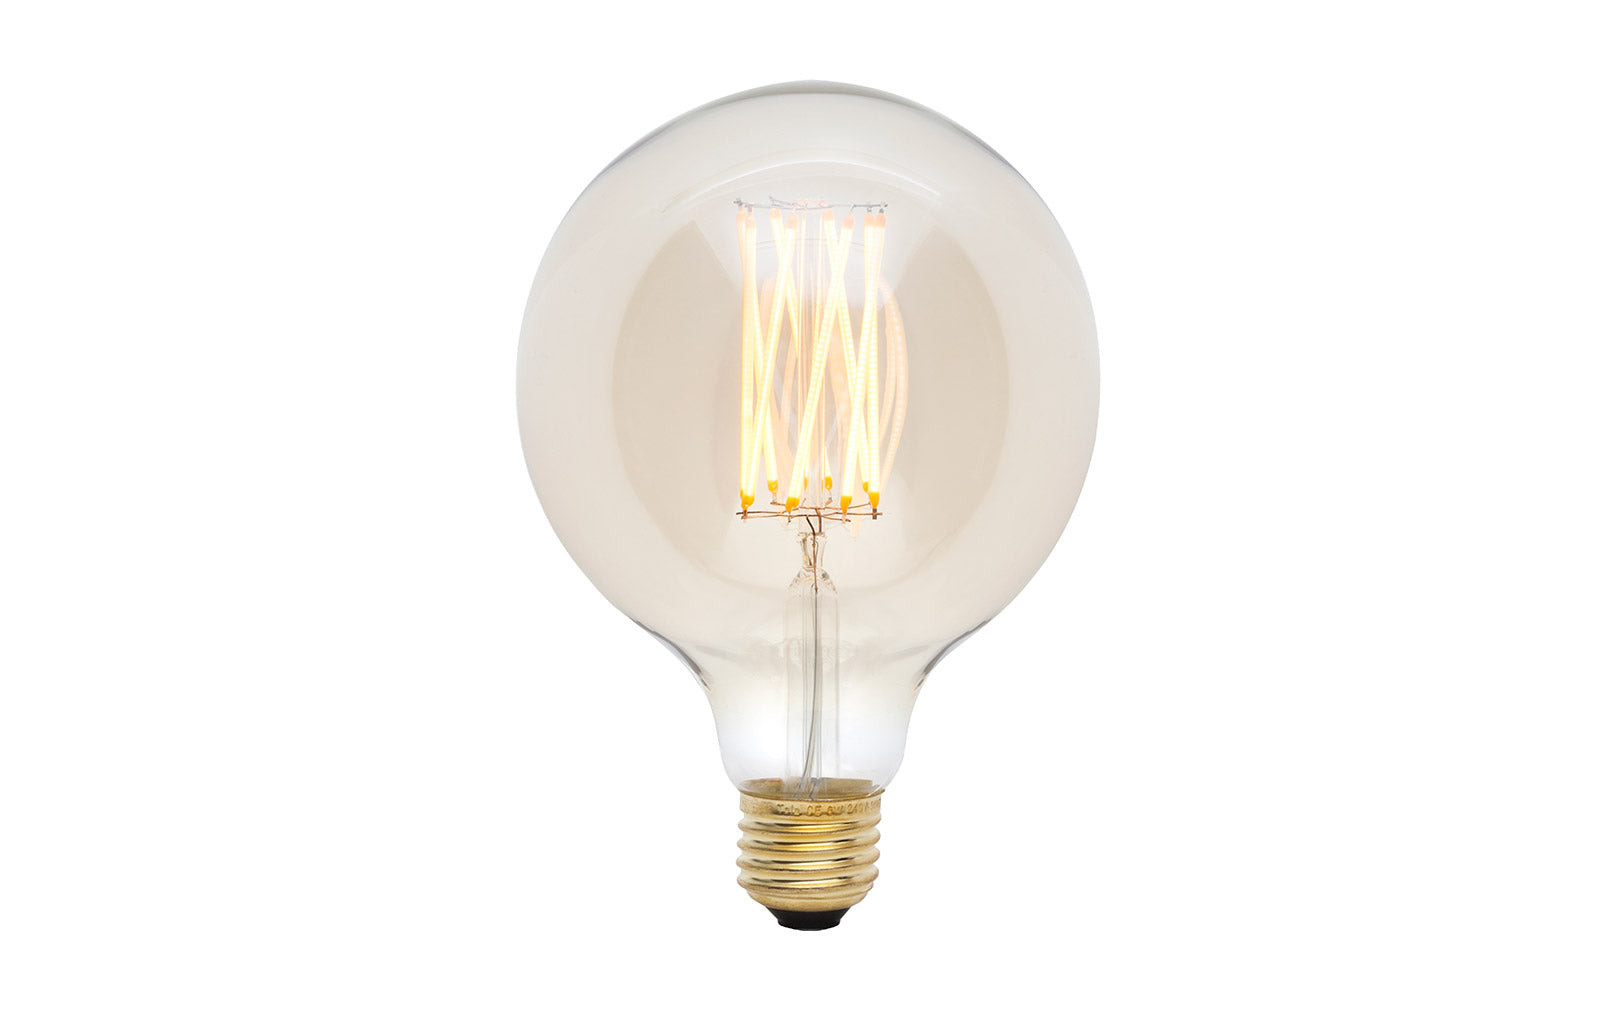 Tom Raffield Tala Gaia 6W Filament Light bulb